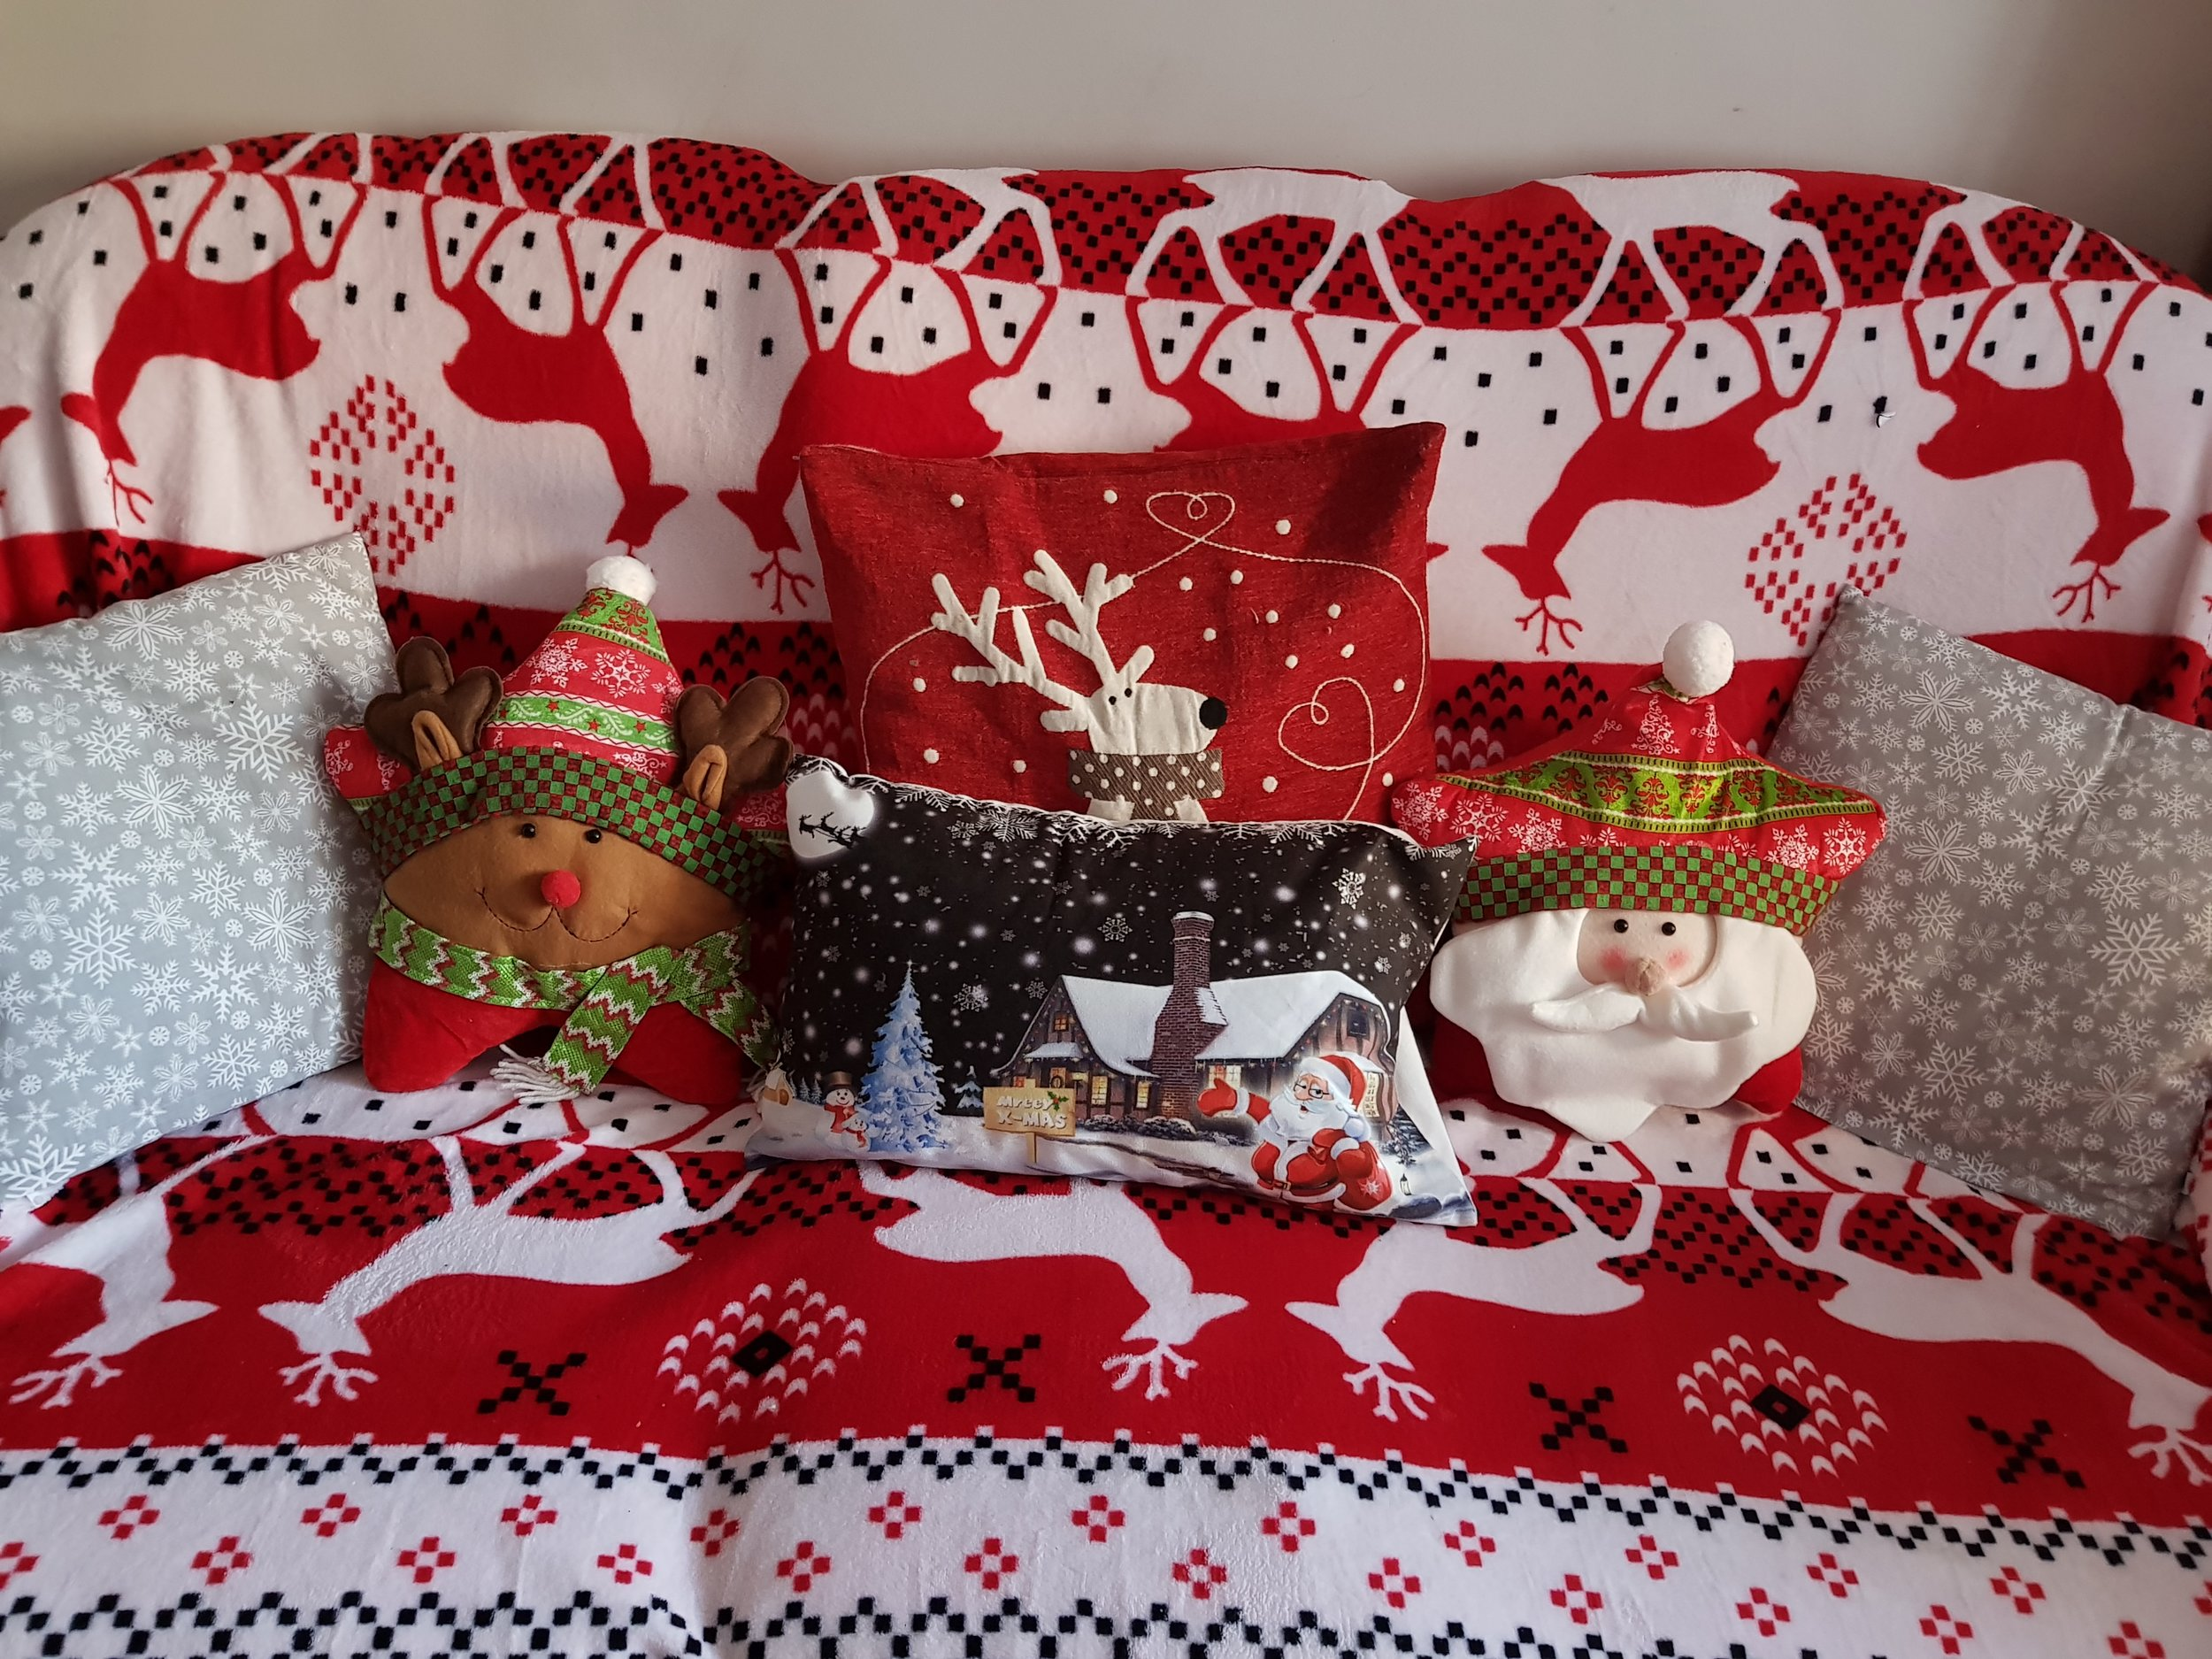 Christmas cushions and sofa throws